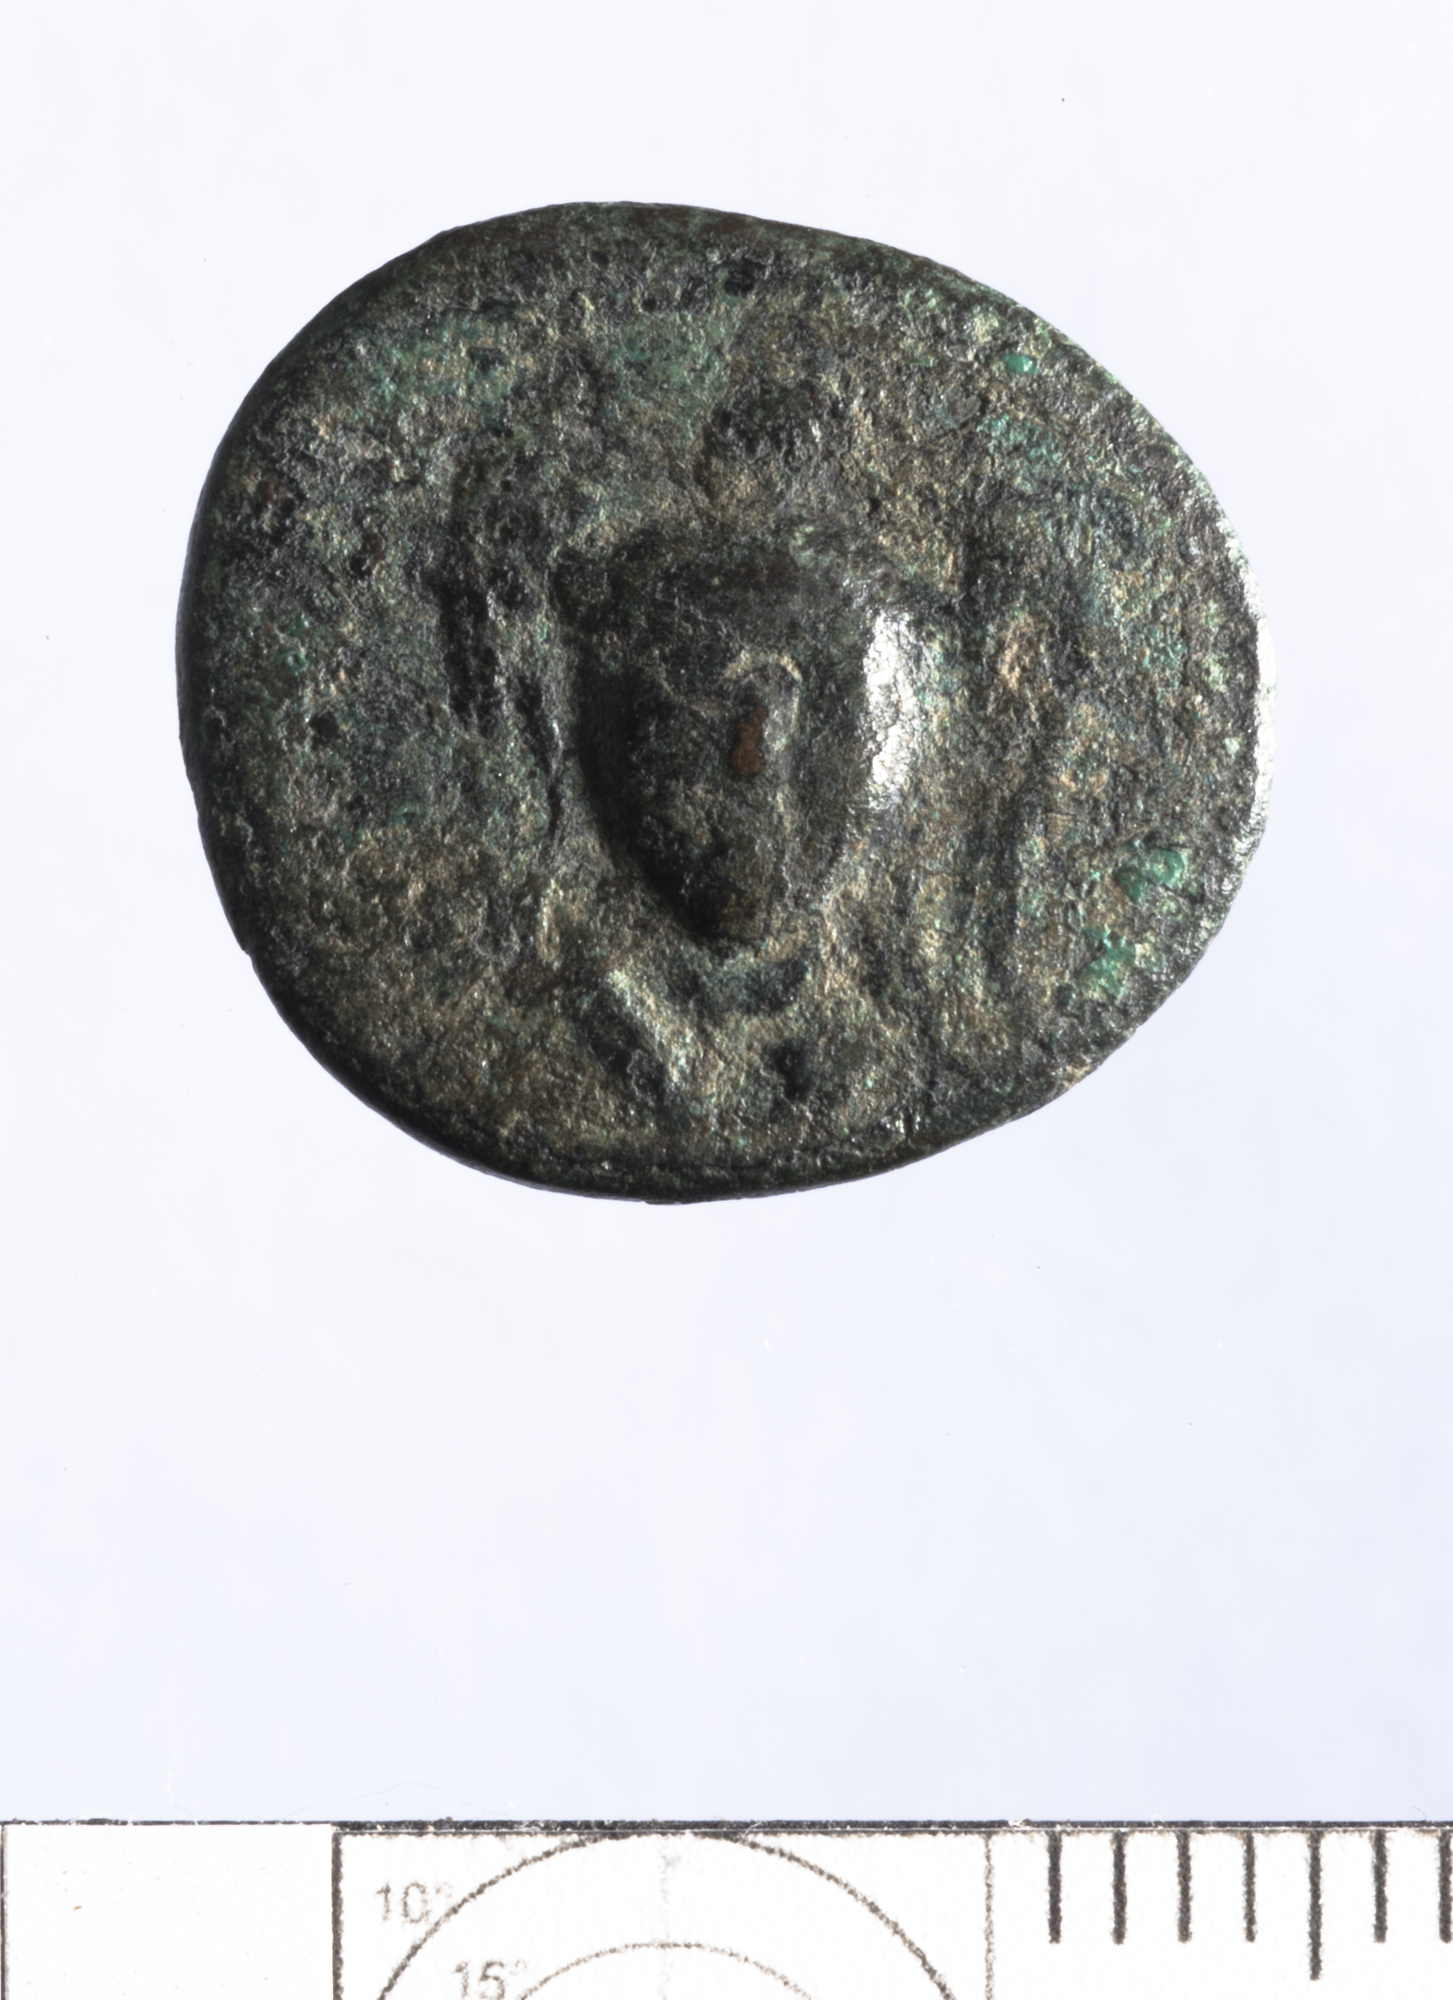 Hellenistic Bronze/Copper Alloy Denomination C or D of Sardis or perhaps Smyrna